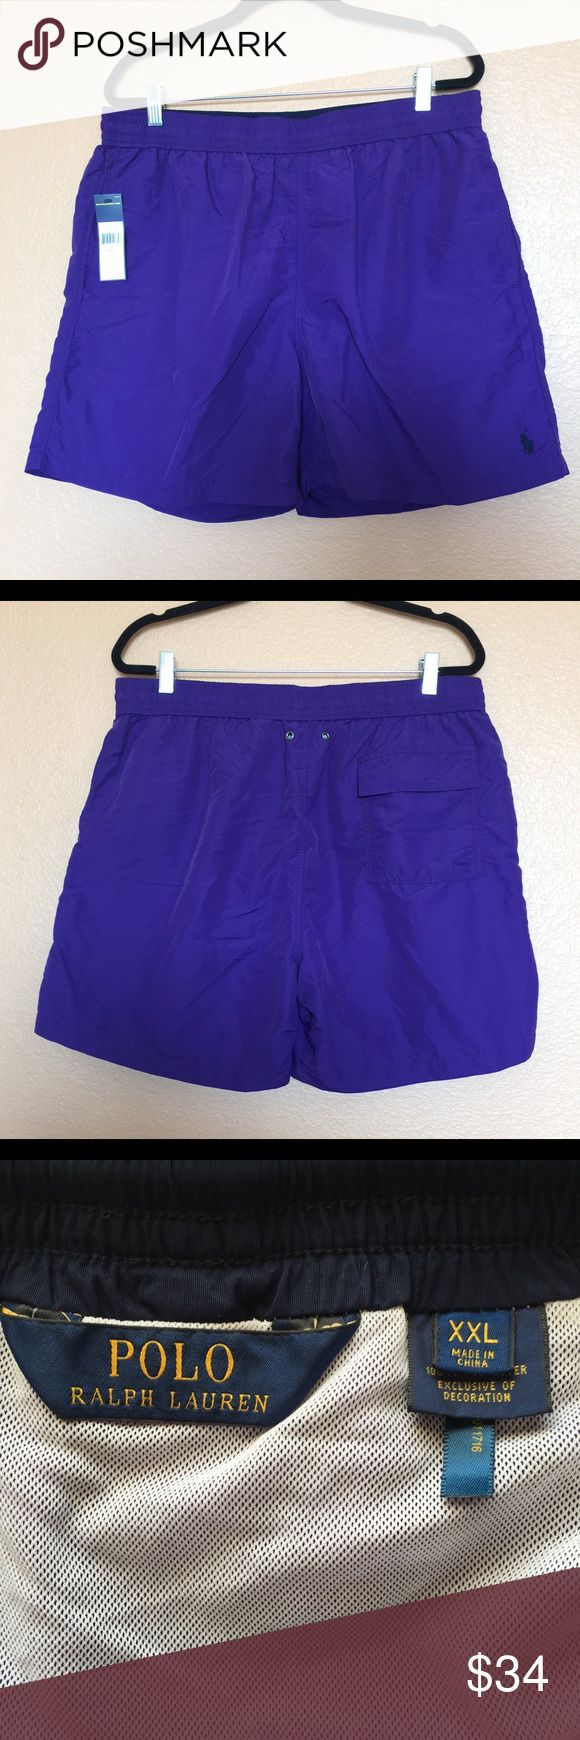 """RALPH LAUREN Men's Swim Trunks Classic Size XXL New with retail tag $59.50. Ralph Lauren Swimming Shorts color Purple. Draw String Waist, 2 side pockets, 1 rear Velcro pocket, Built in Underwear. Shell - 100% Nylon, Lining - 100% Polyester. Measures 17.75"""" Waist before stretch, 19"""" Length. CONDITION: Item may have been tried on by customers in store. Item color appearance may vary slightly depending on lightning, camera flash, etc. from provided picture(s).  NOTE: keep in mind each product…"""